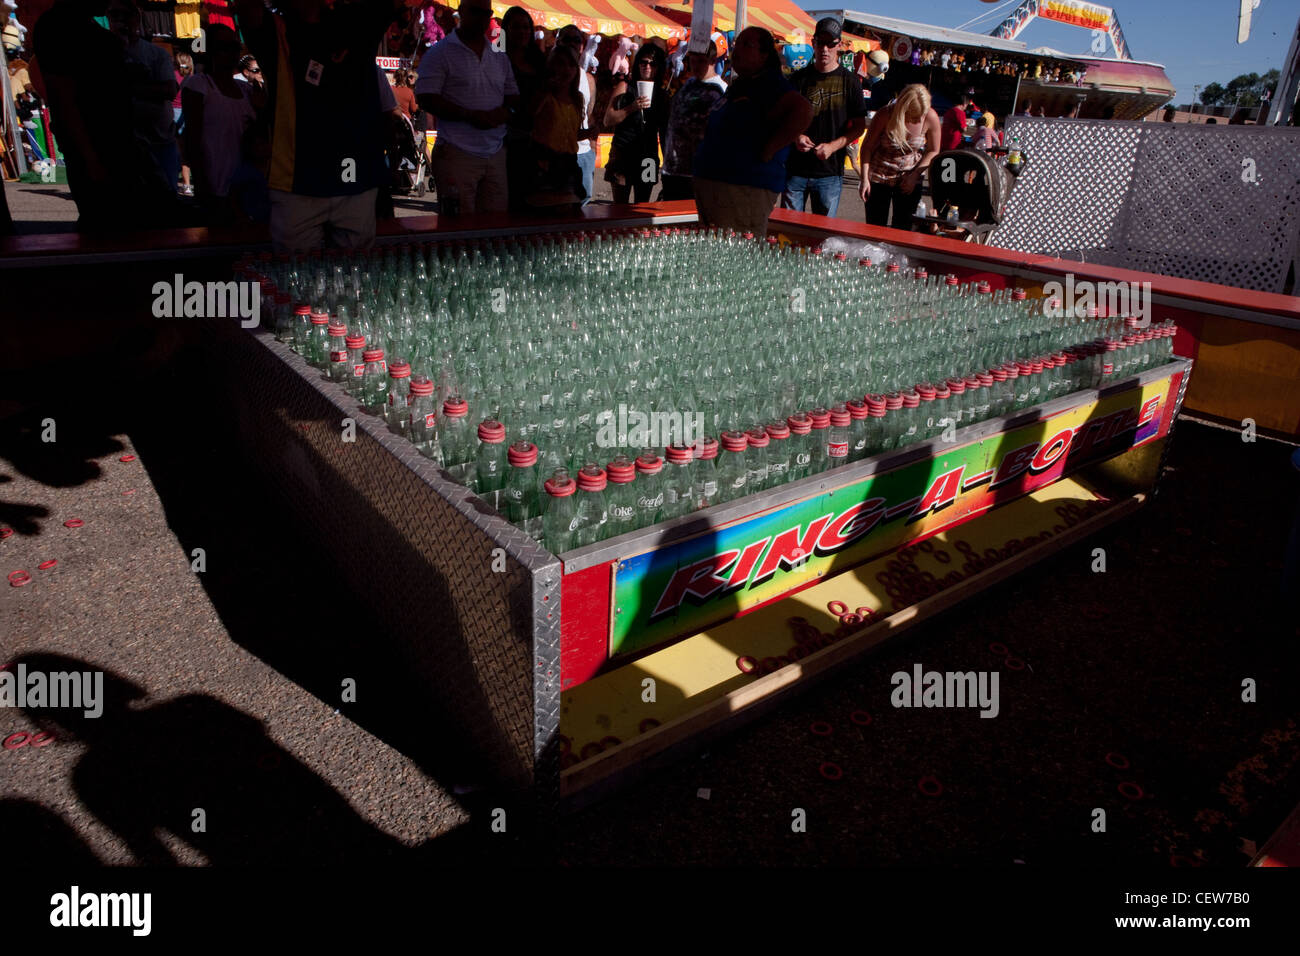 Bottle toss game at the State Fair - Stock Image